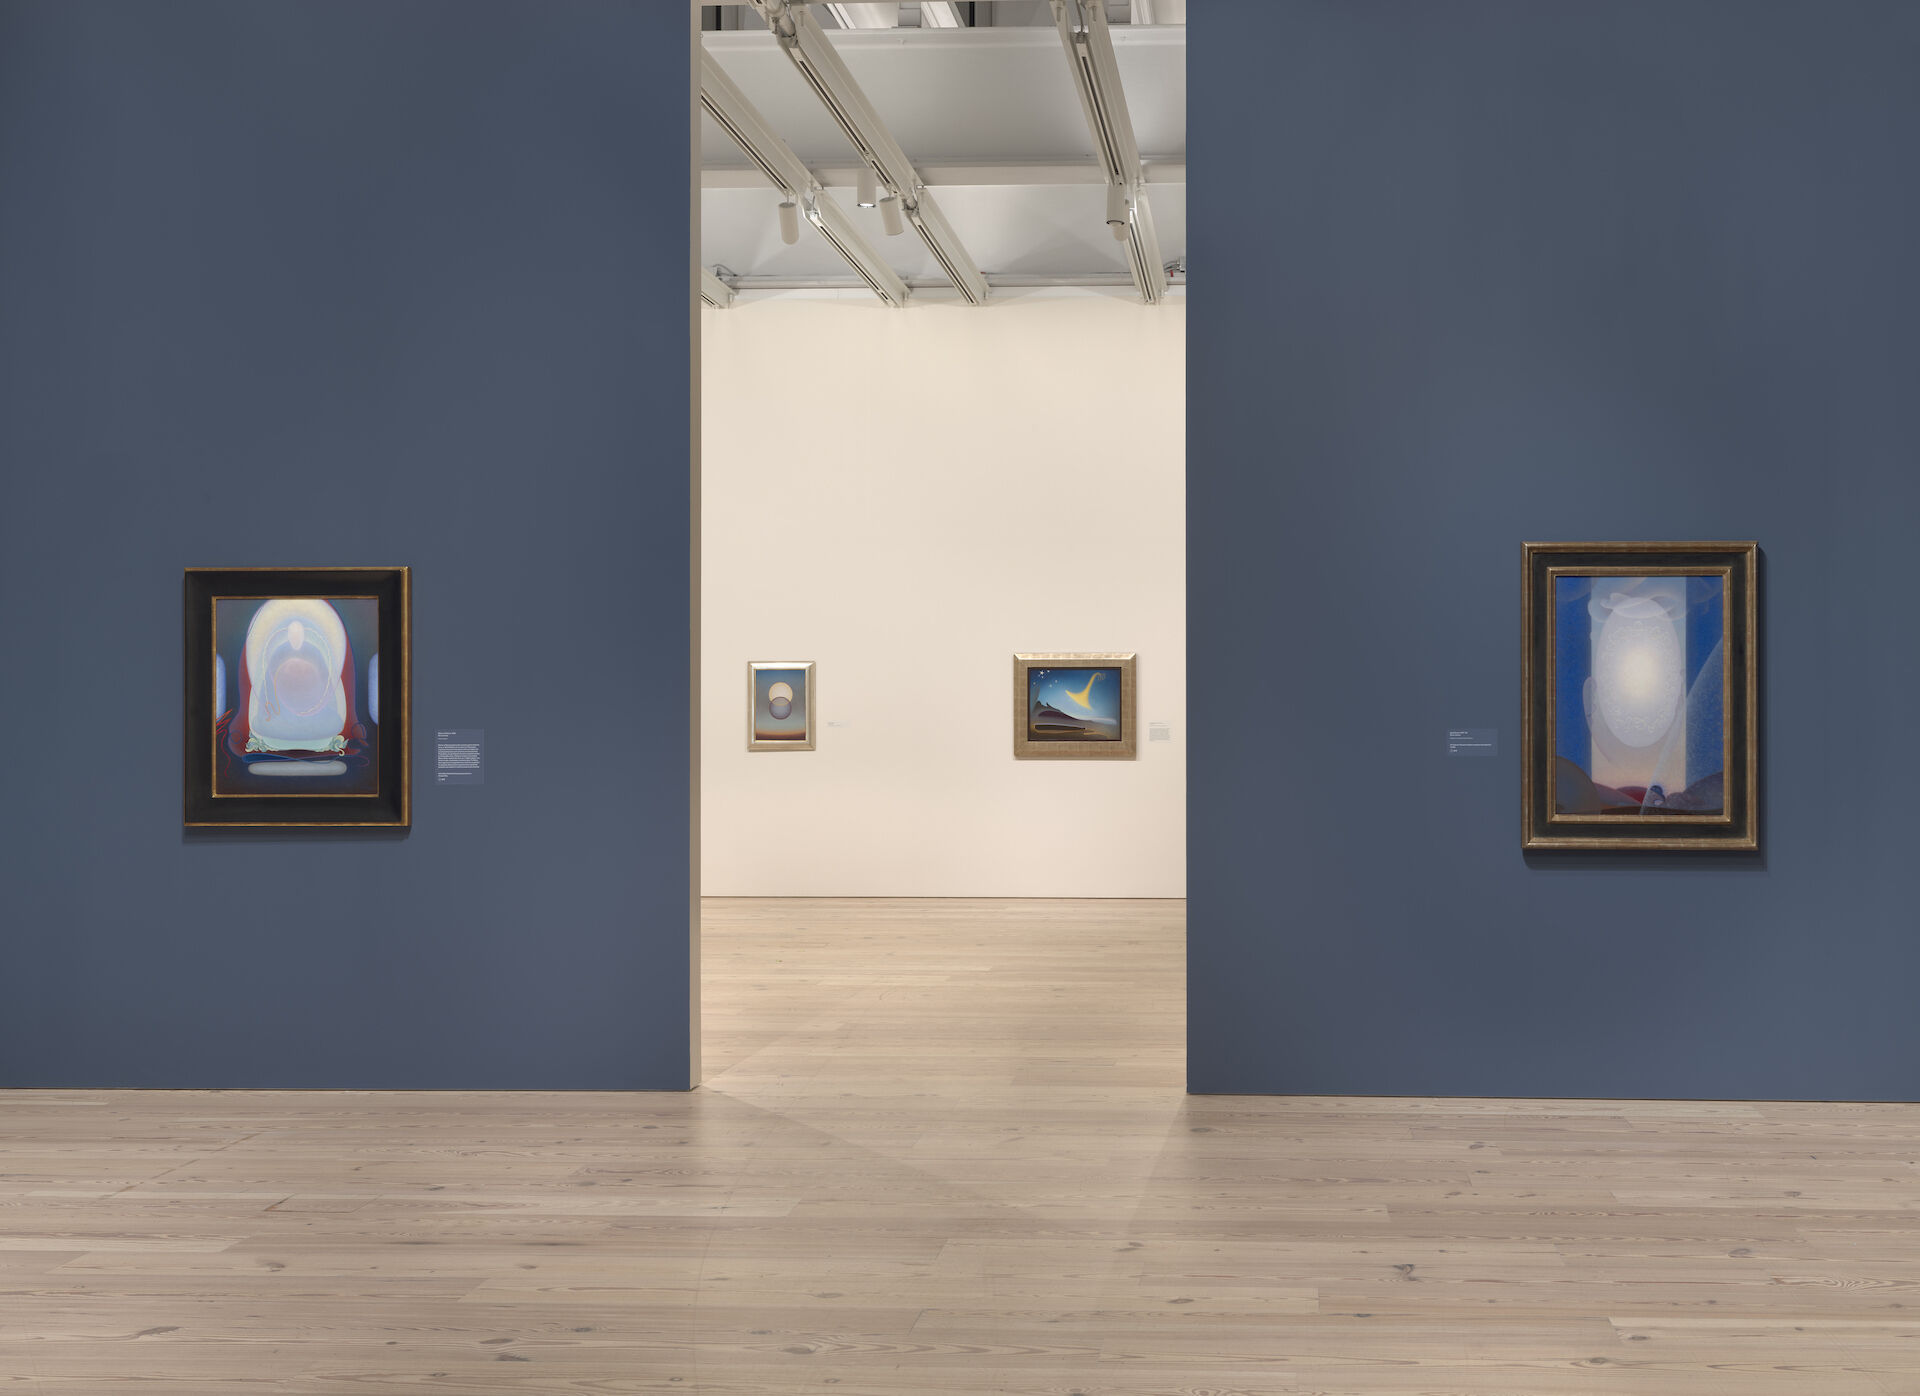 There is an entryway between two blue walls with a painting on each side. Past the entryway is a white room with paintings against the back wall. Each painting is by Agnes Pelton at the Whitney. From left to right: Mother of Silence, 1933; Departure, 1952; Awakening (Memory of Father), 1943; Light Center, 1947-48.